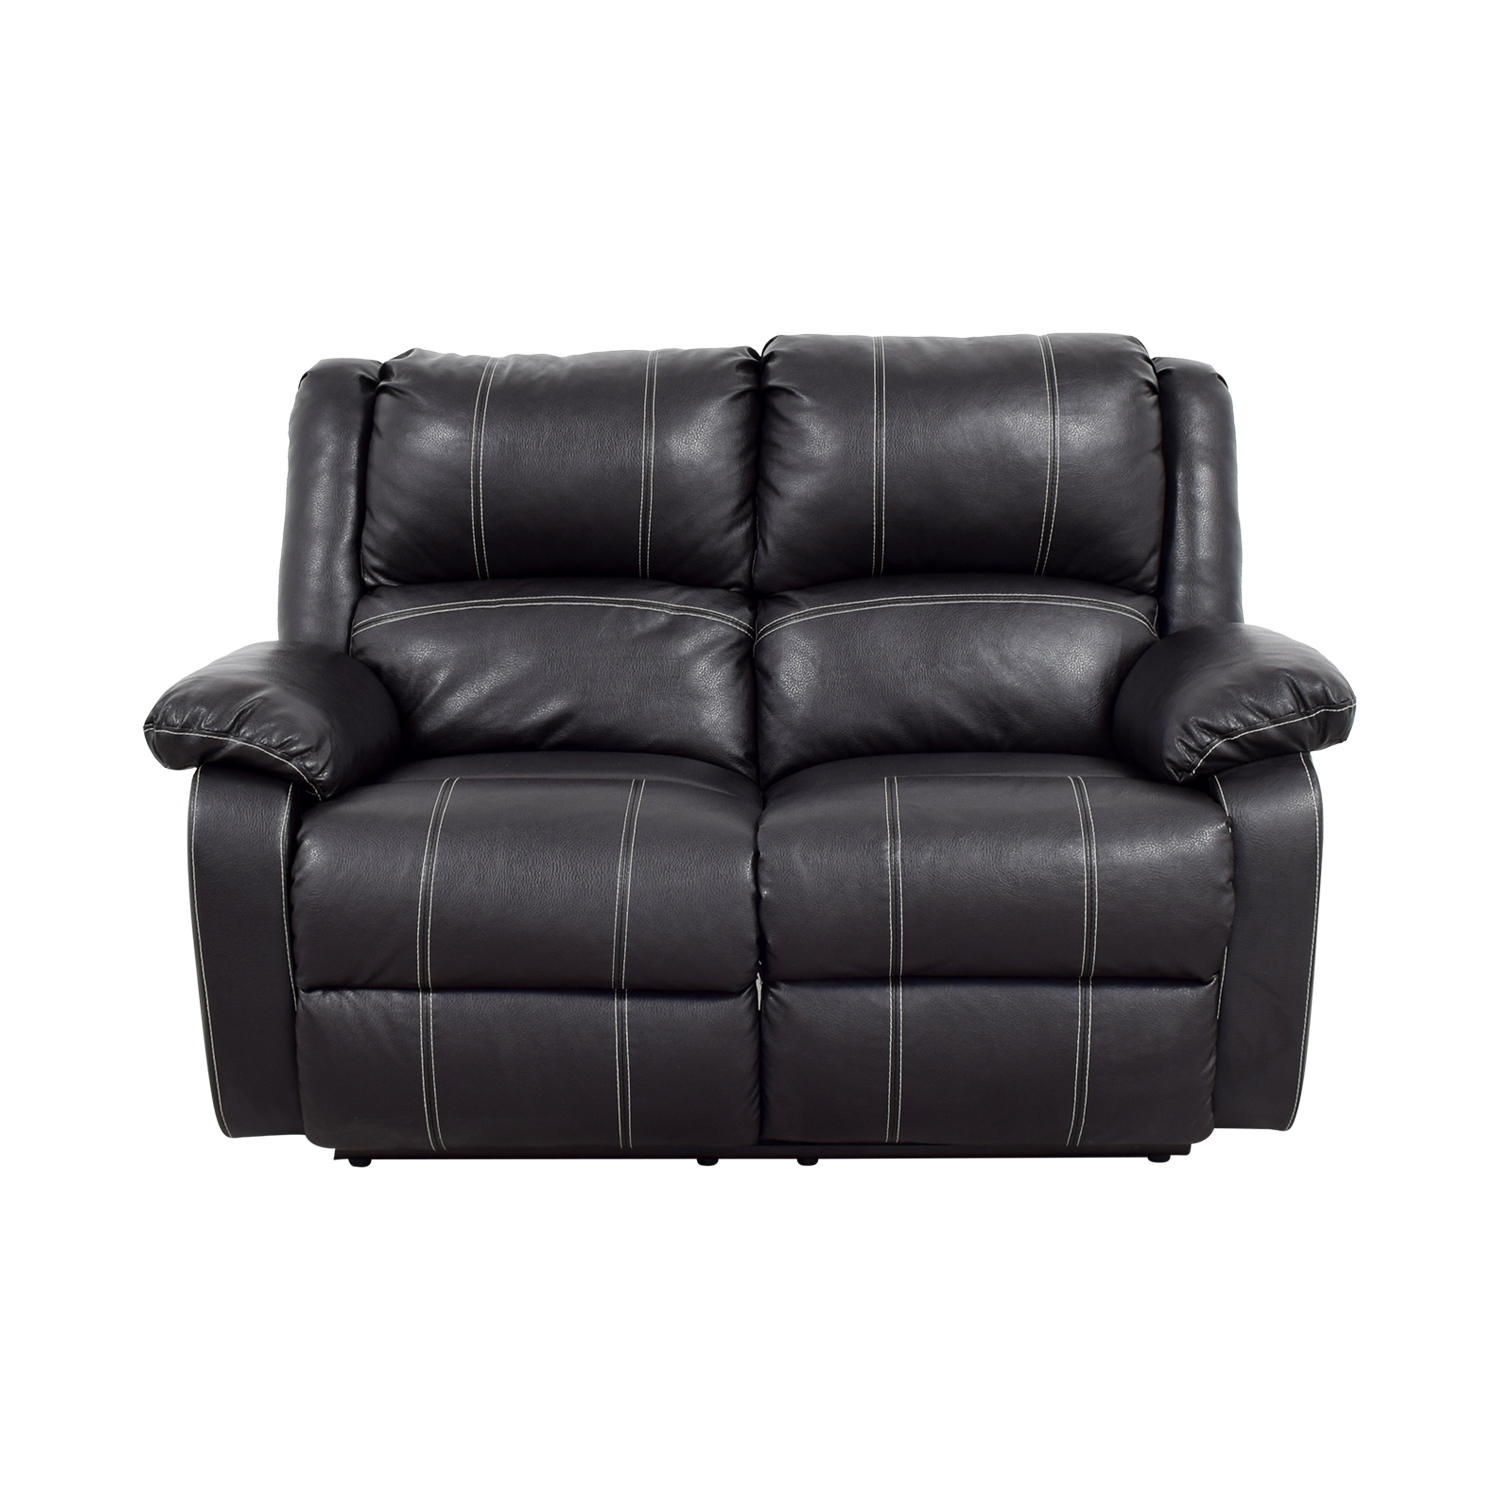 Buy reclining love seat used furniture on sale Reclining leather sofa and loveseat